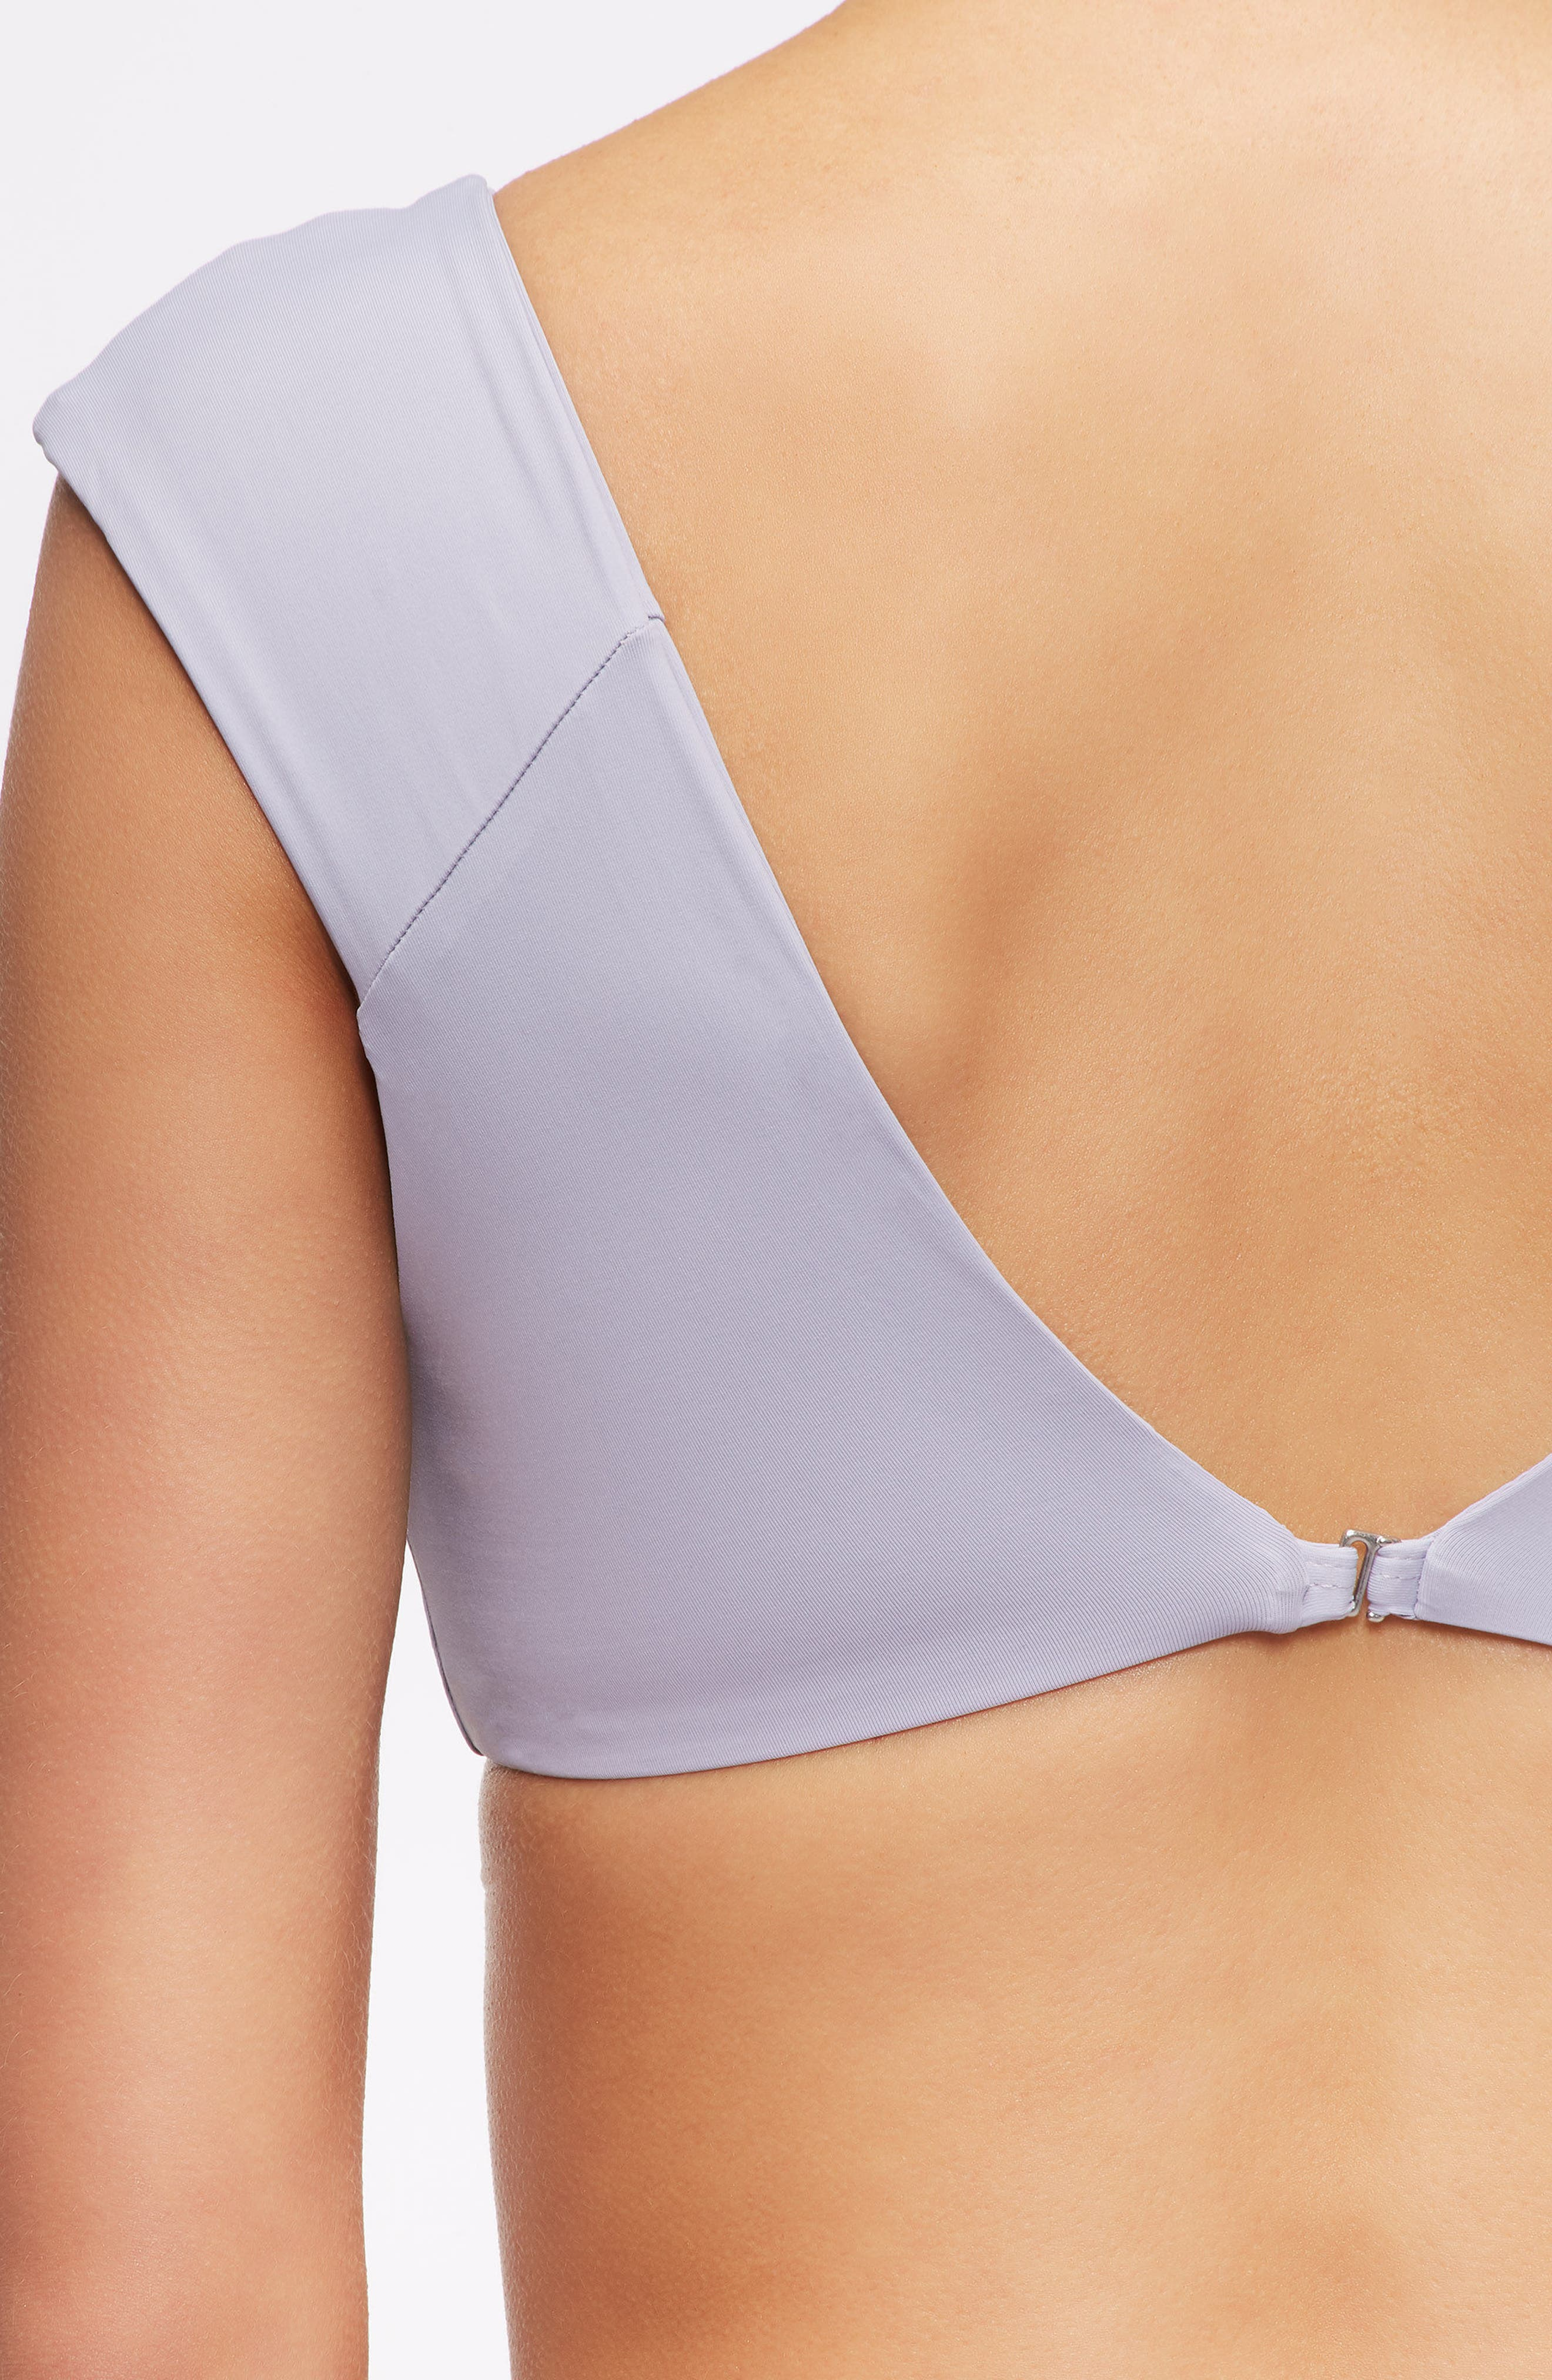 Alchemy Bikini Top,                             Alternate thumbnail 5, color,                             LILAC GREY